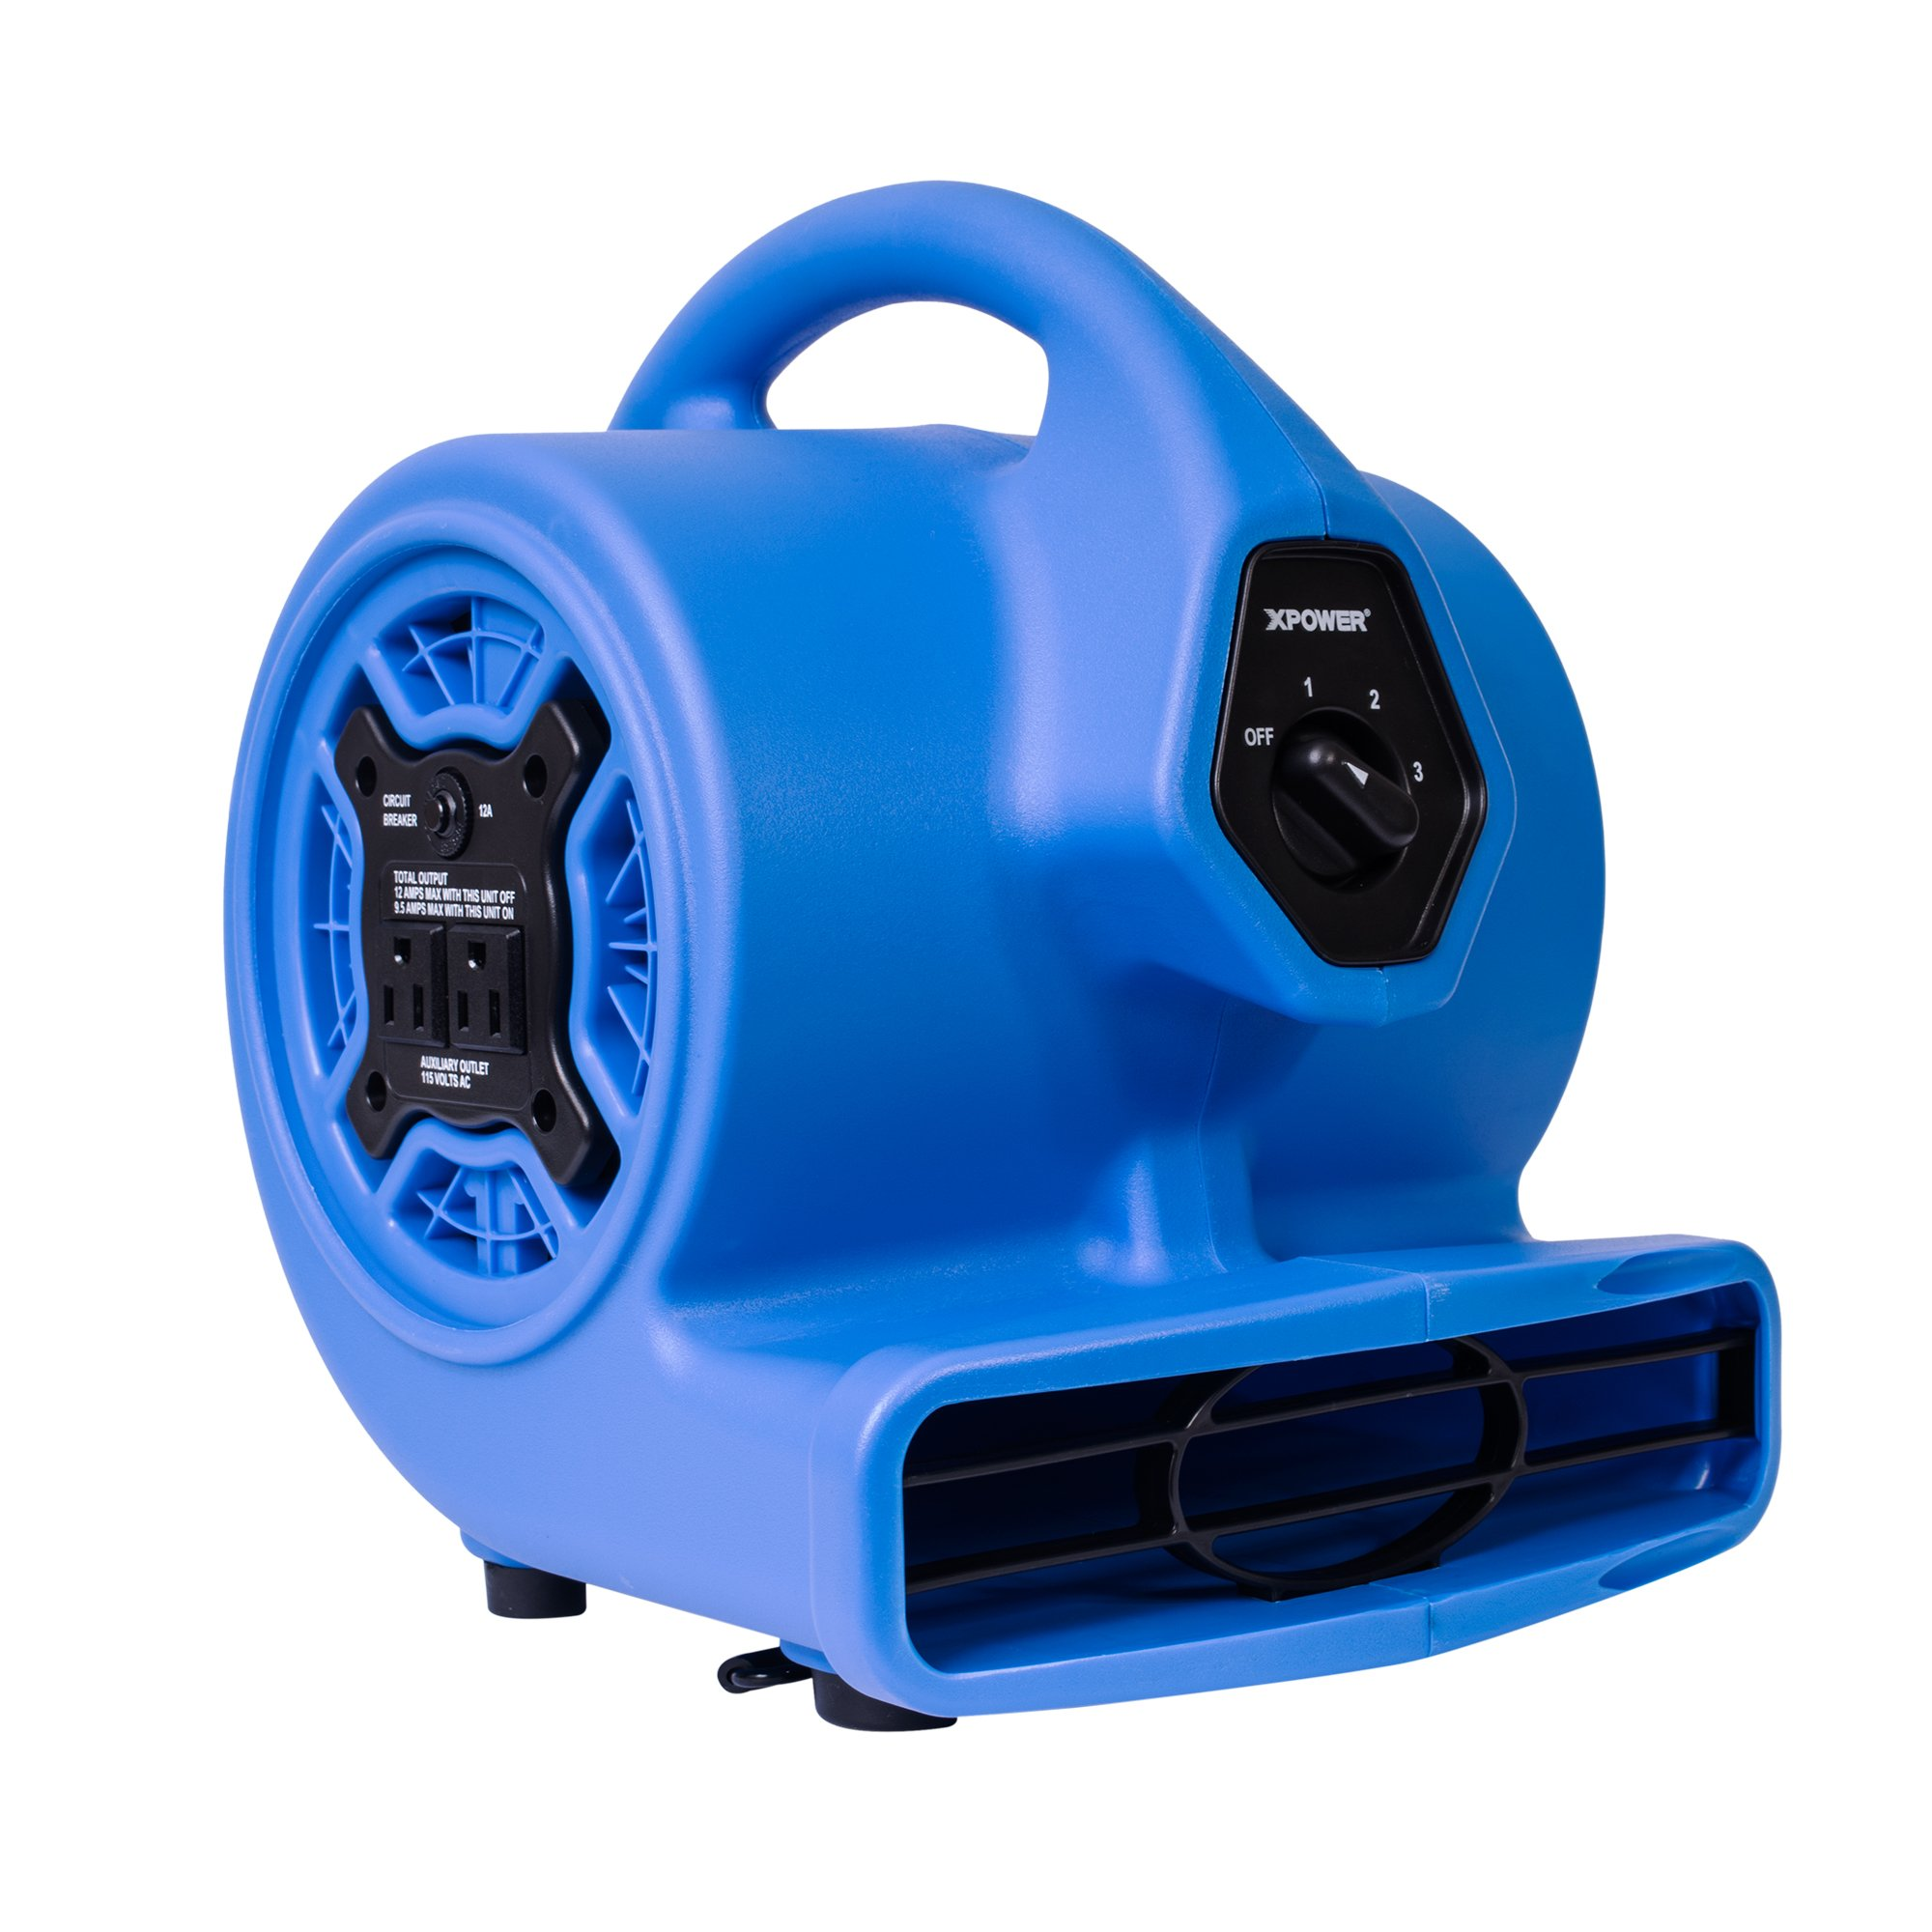 XPOWER P-100A 3 Speeds Mini Air Mover, Floor Fan, Dryer, Utility Blower with Built-In Dual Outlets for Daisy Chain- Blue